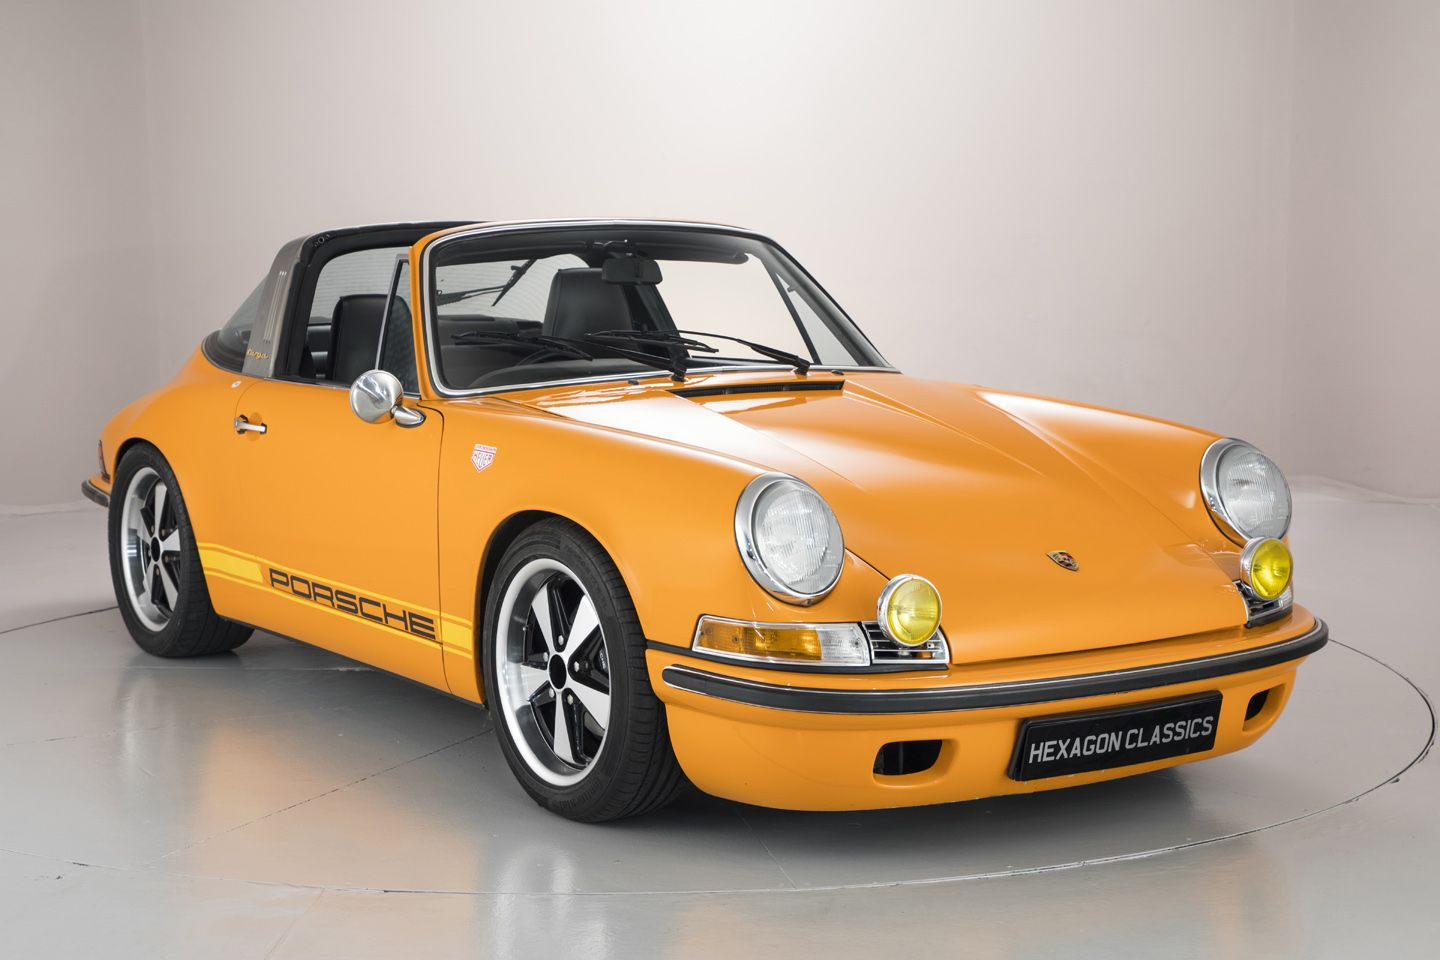 Selling My Porsche 911sc Was My Worst Ever Automotive Mistake